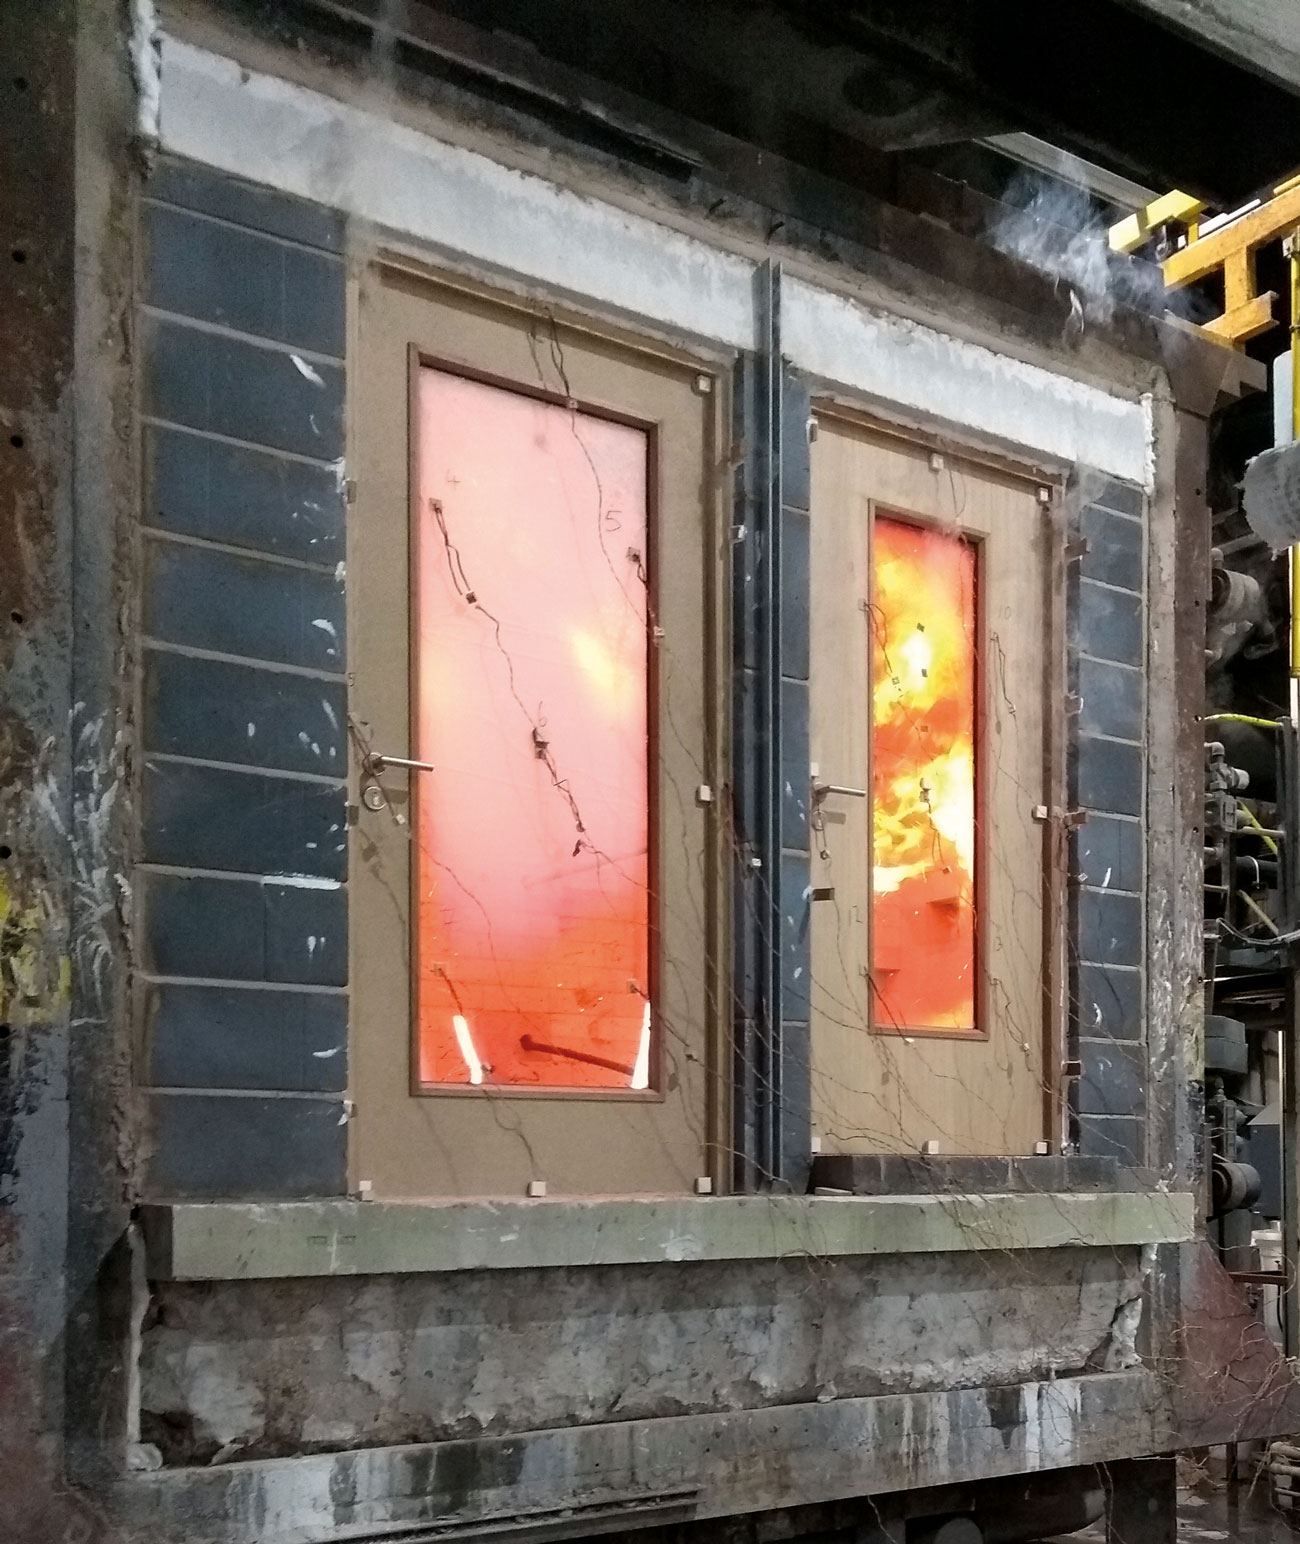 Fire testing in action for the Pyroplex 60-minute glazing system.